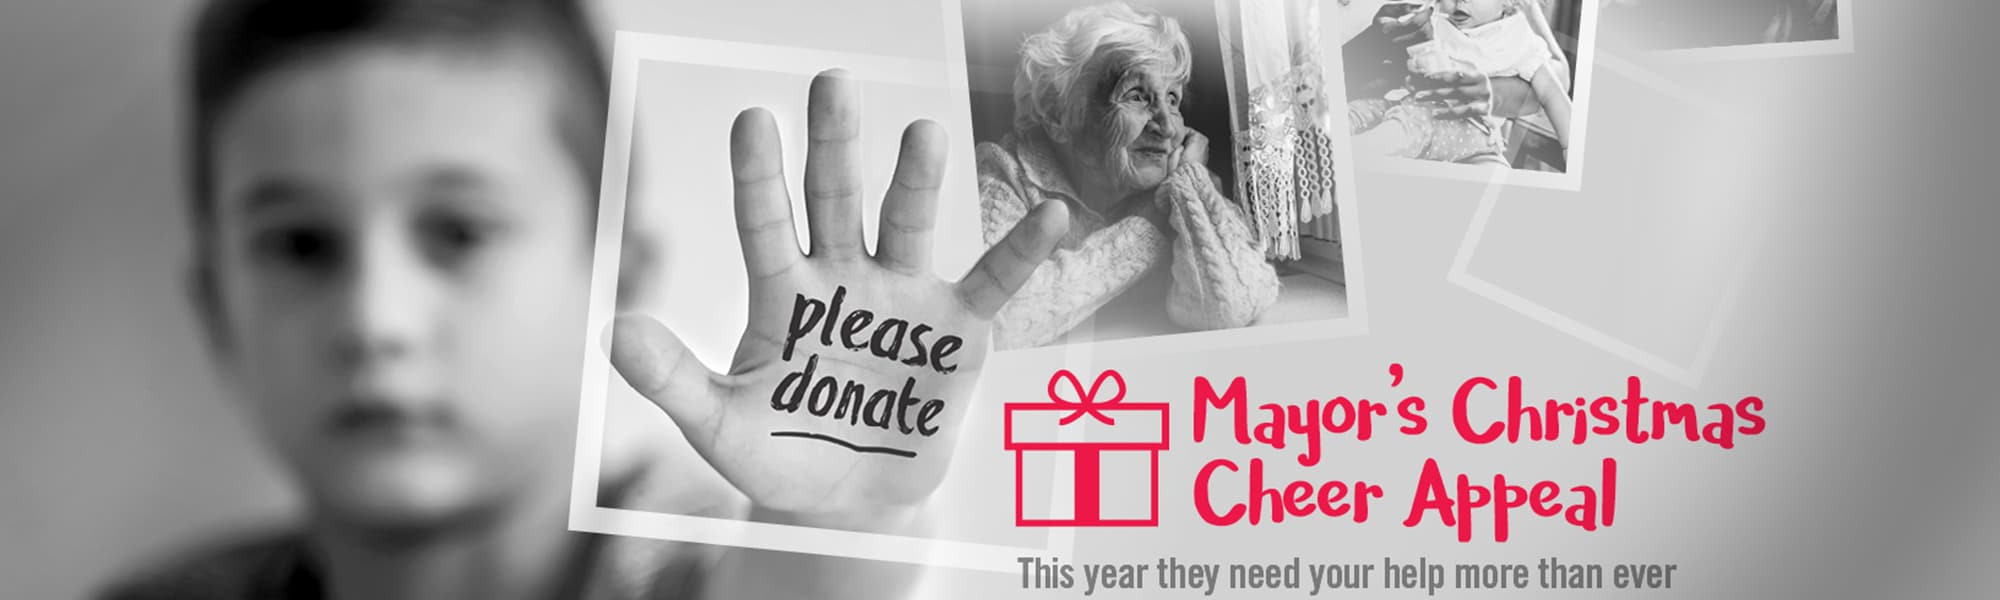 Fundraising Boosted for Mayor's Christmas Cheer Appeal